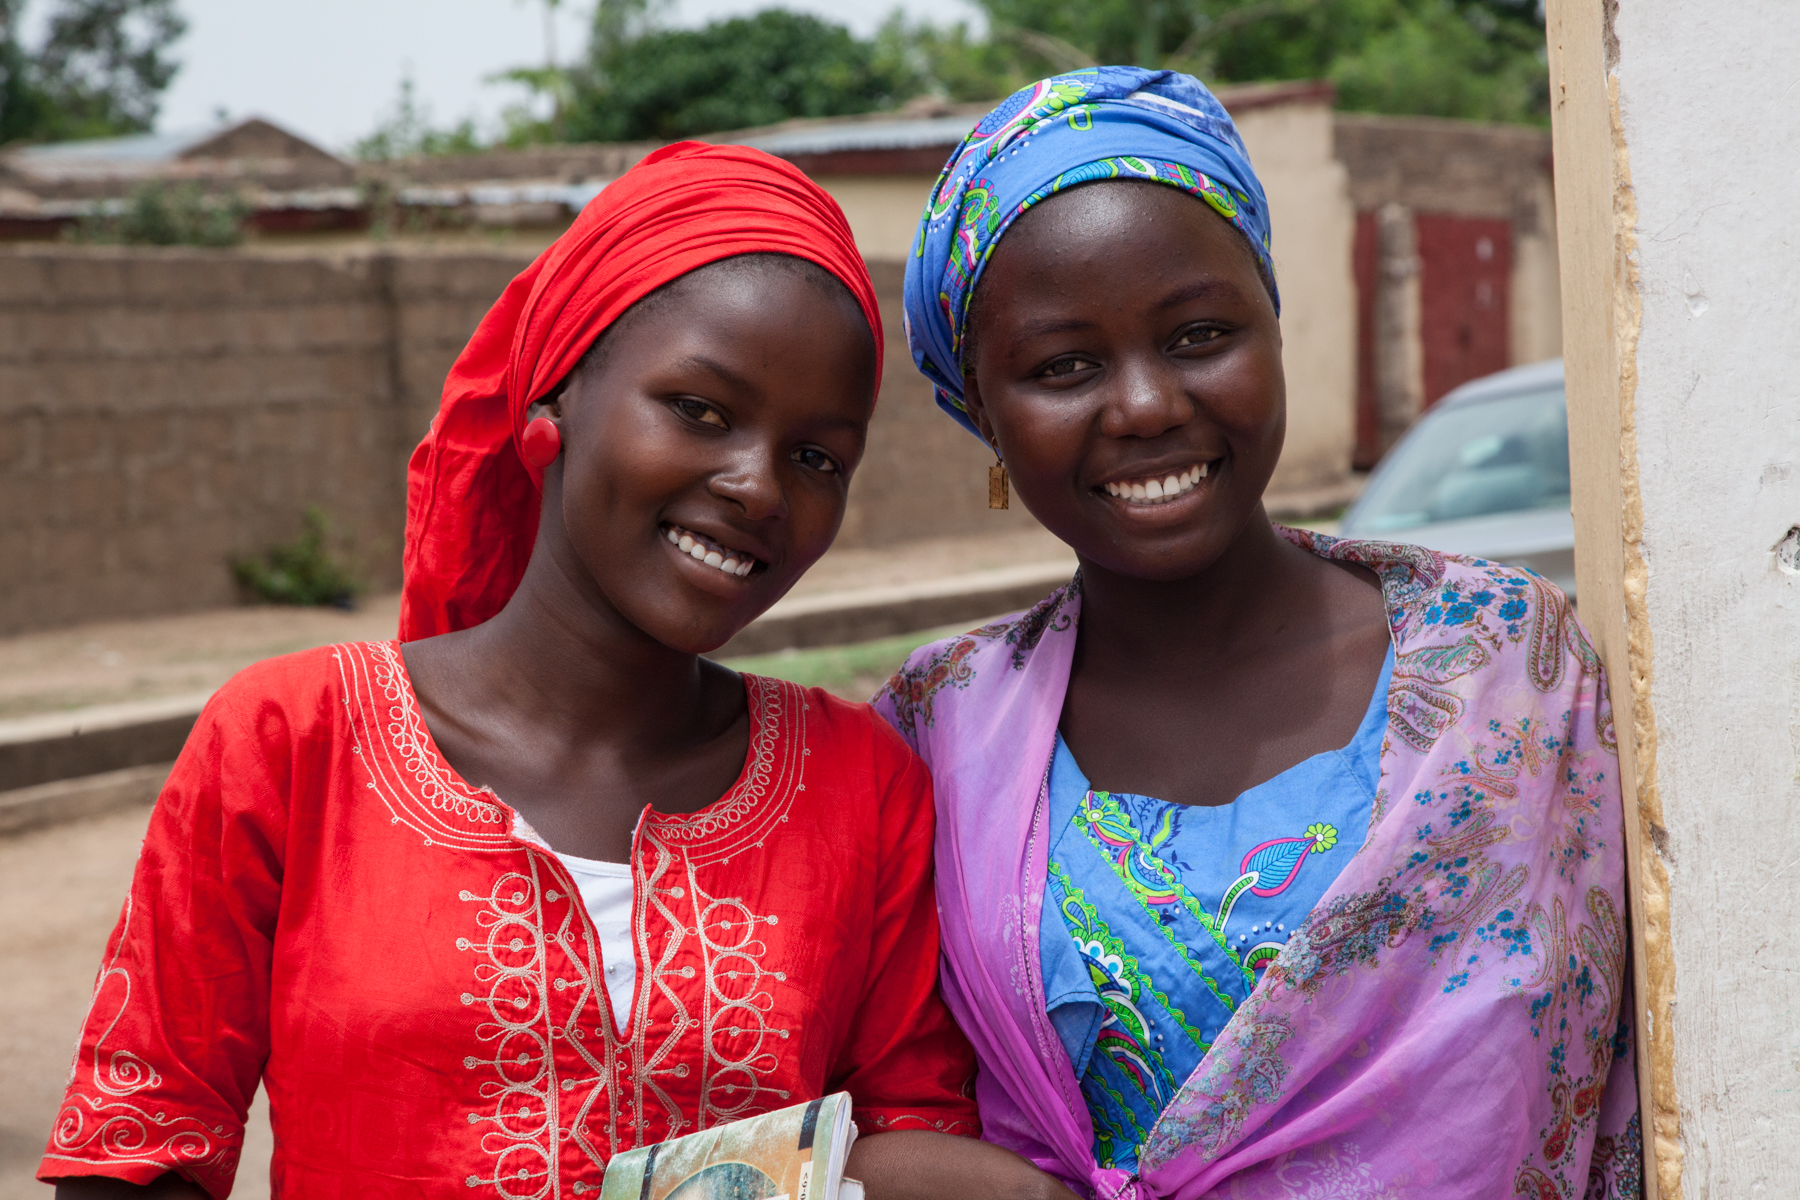 WE'VE BUILT MORE THAN 50 INTERFAITH PEACEMAKER TEAMS IN NIGERIA